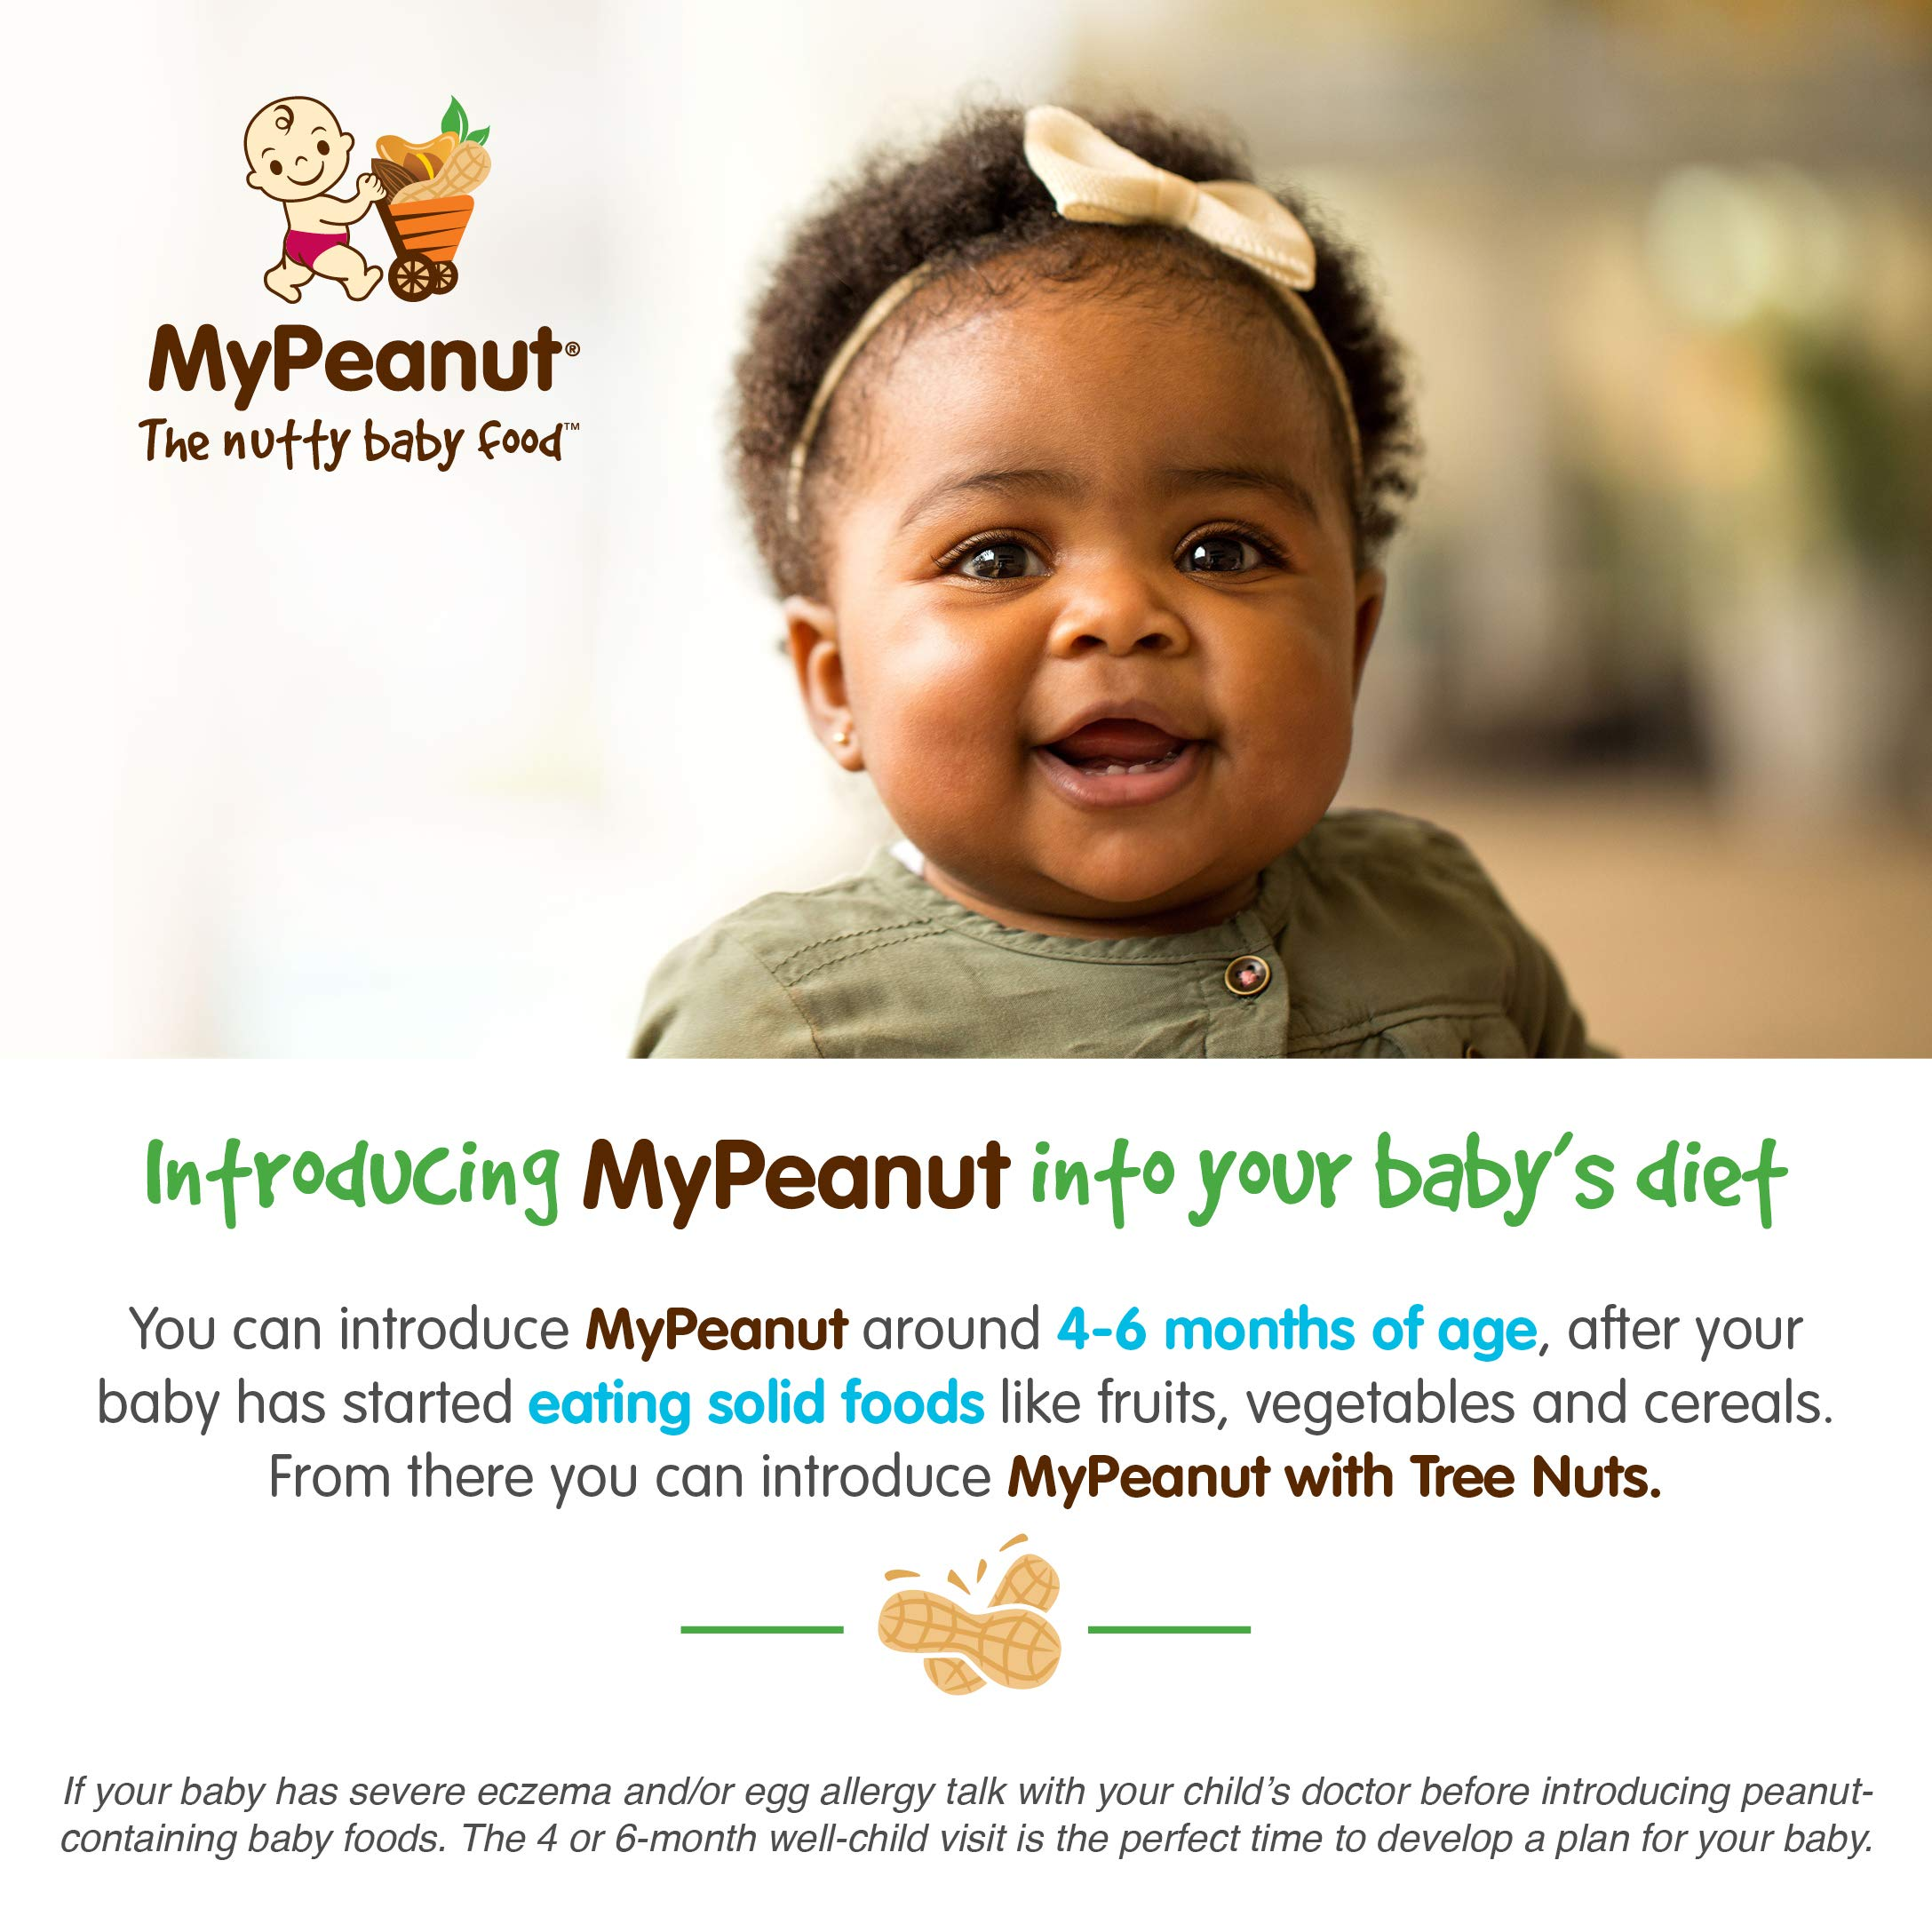 MyPeanut Baby Food, Organic Stage 1 Peanut and Apple Puree for Introducing and Feeding Babies and Toddlers Nuts, Non-GMO, BPA Free 3.5 oz Pouch, 24 Pack by MyPeanut (Image #5)